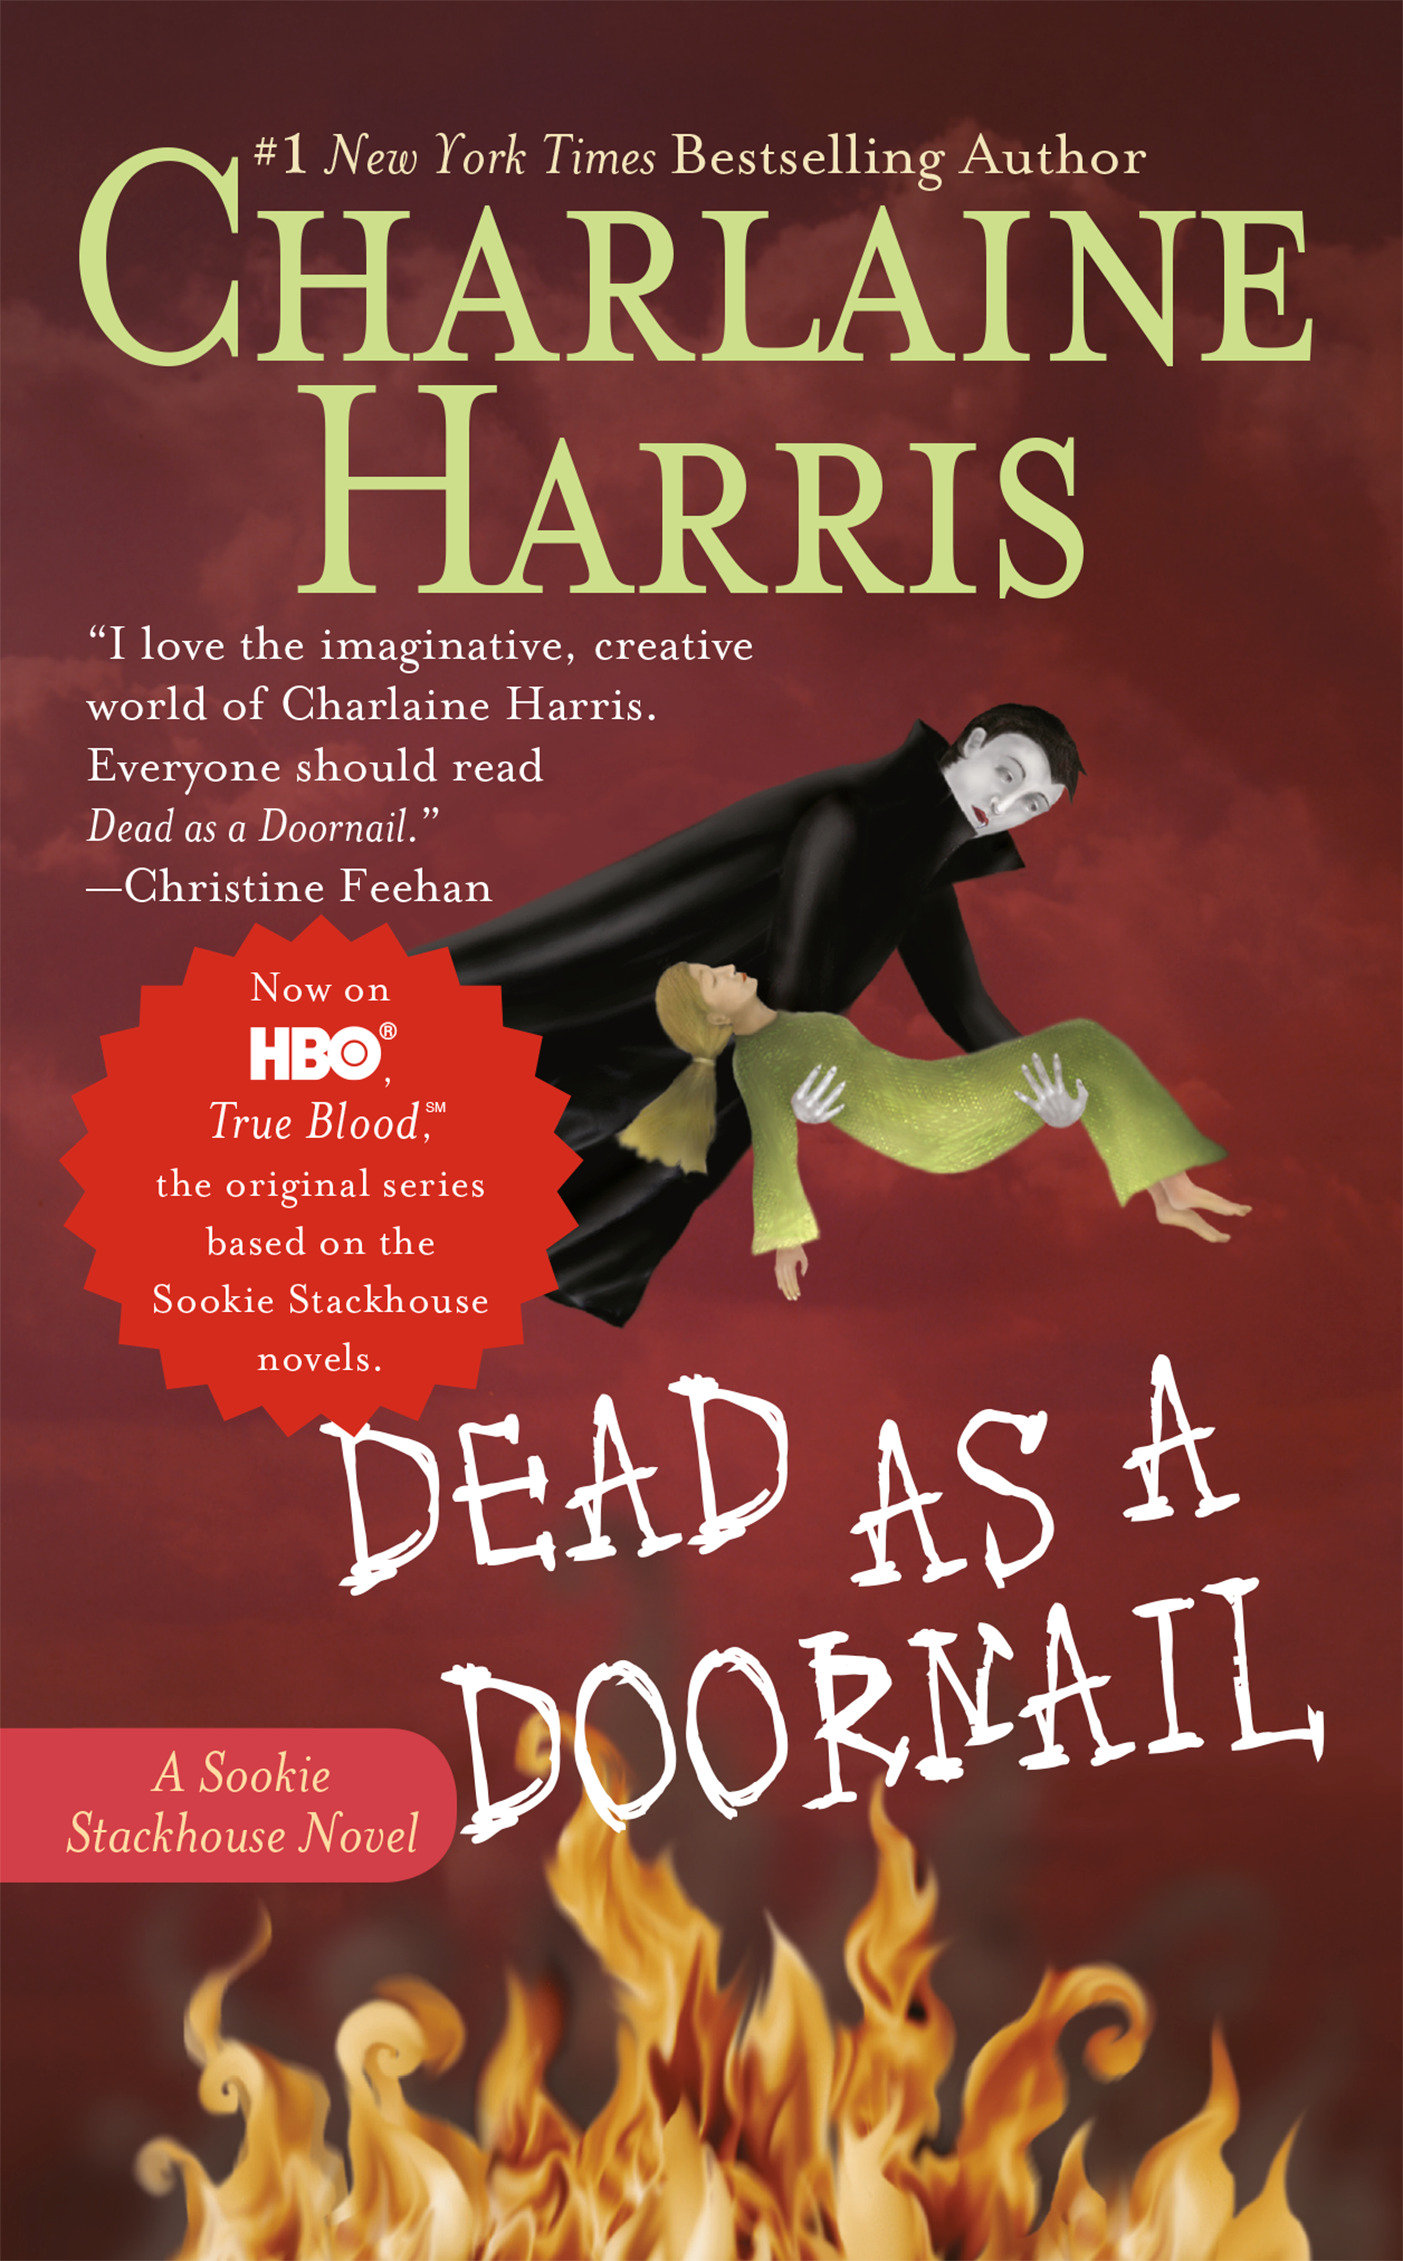 Dead as a doornail cover image